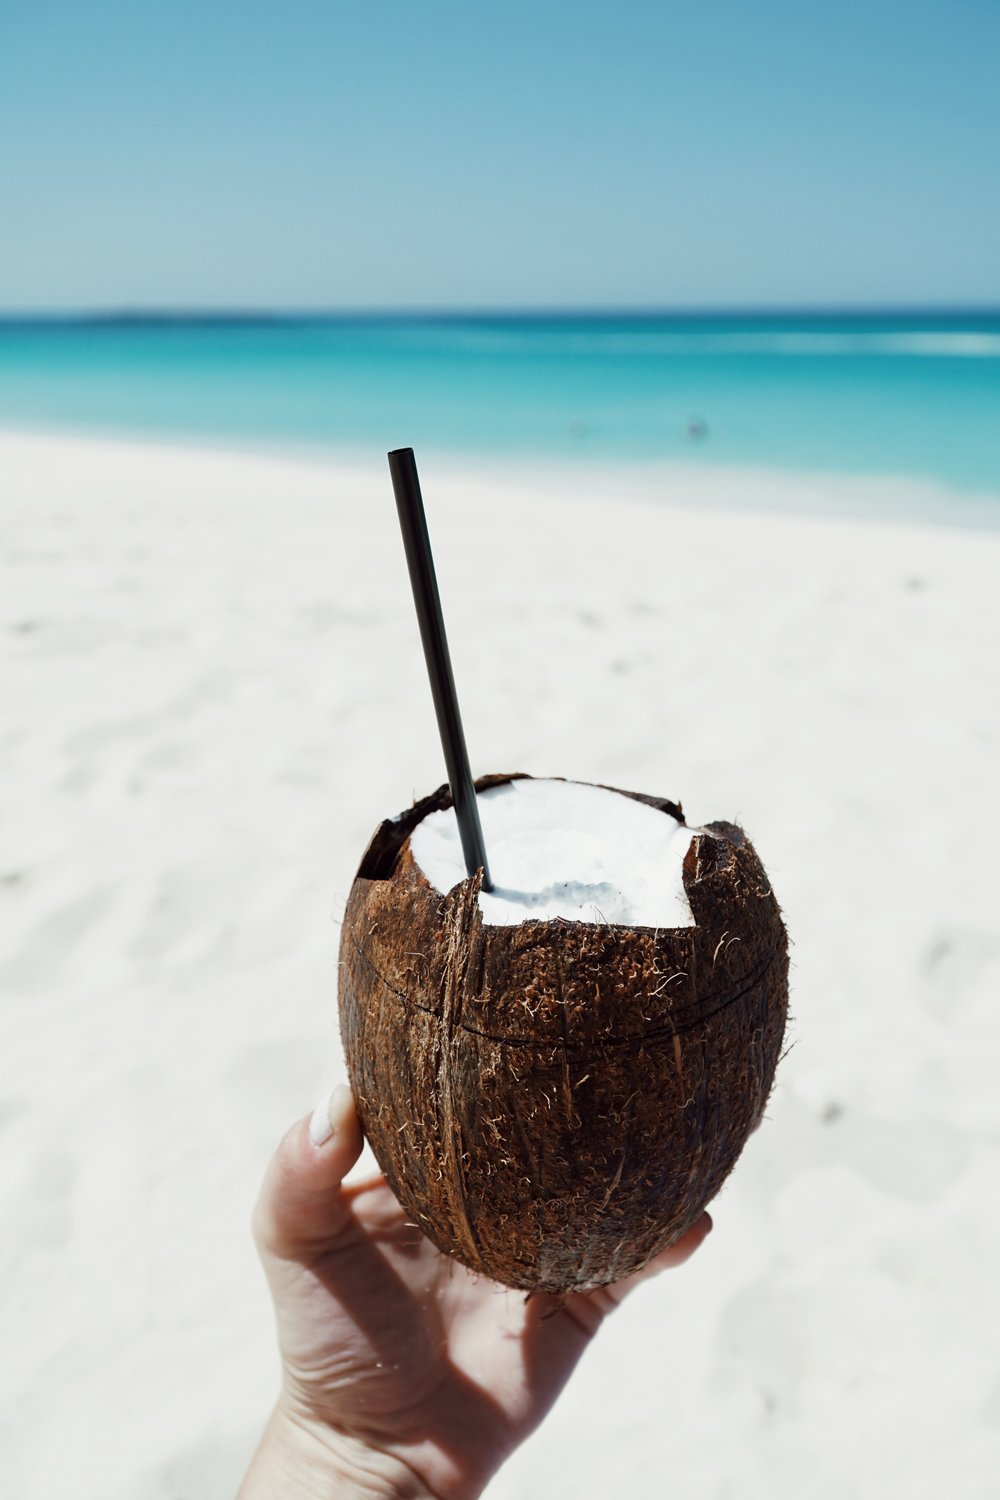 Julia Friedman enjoys a coconut smoothie at the One&Only Ocean Club in the Bahamas.